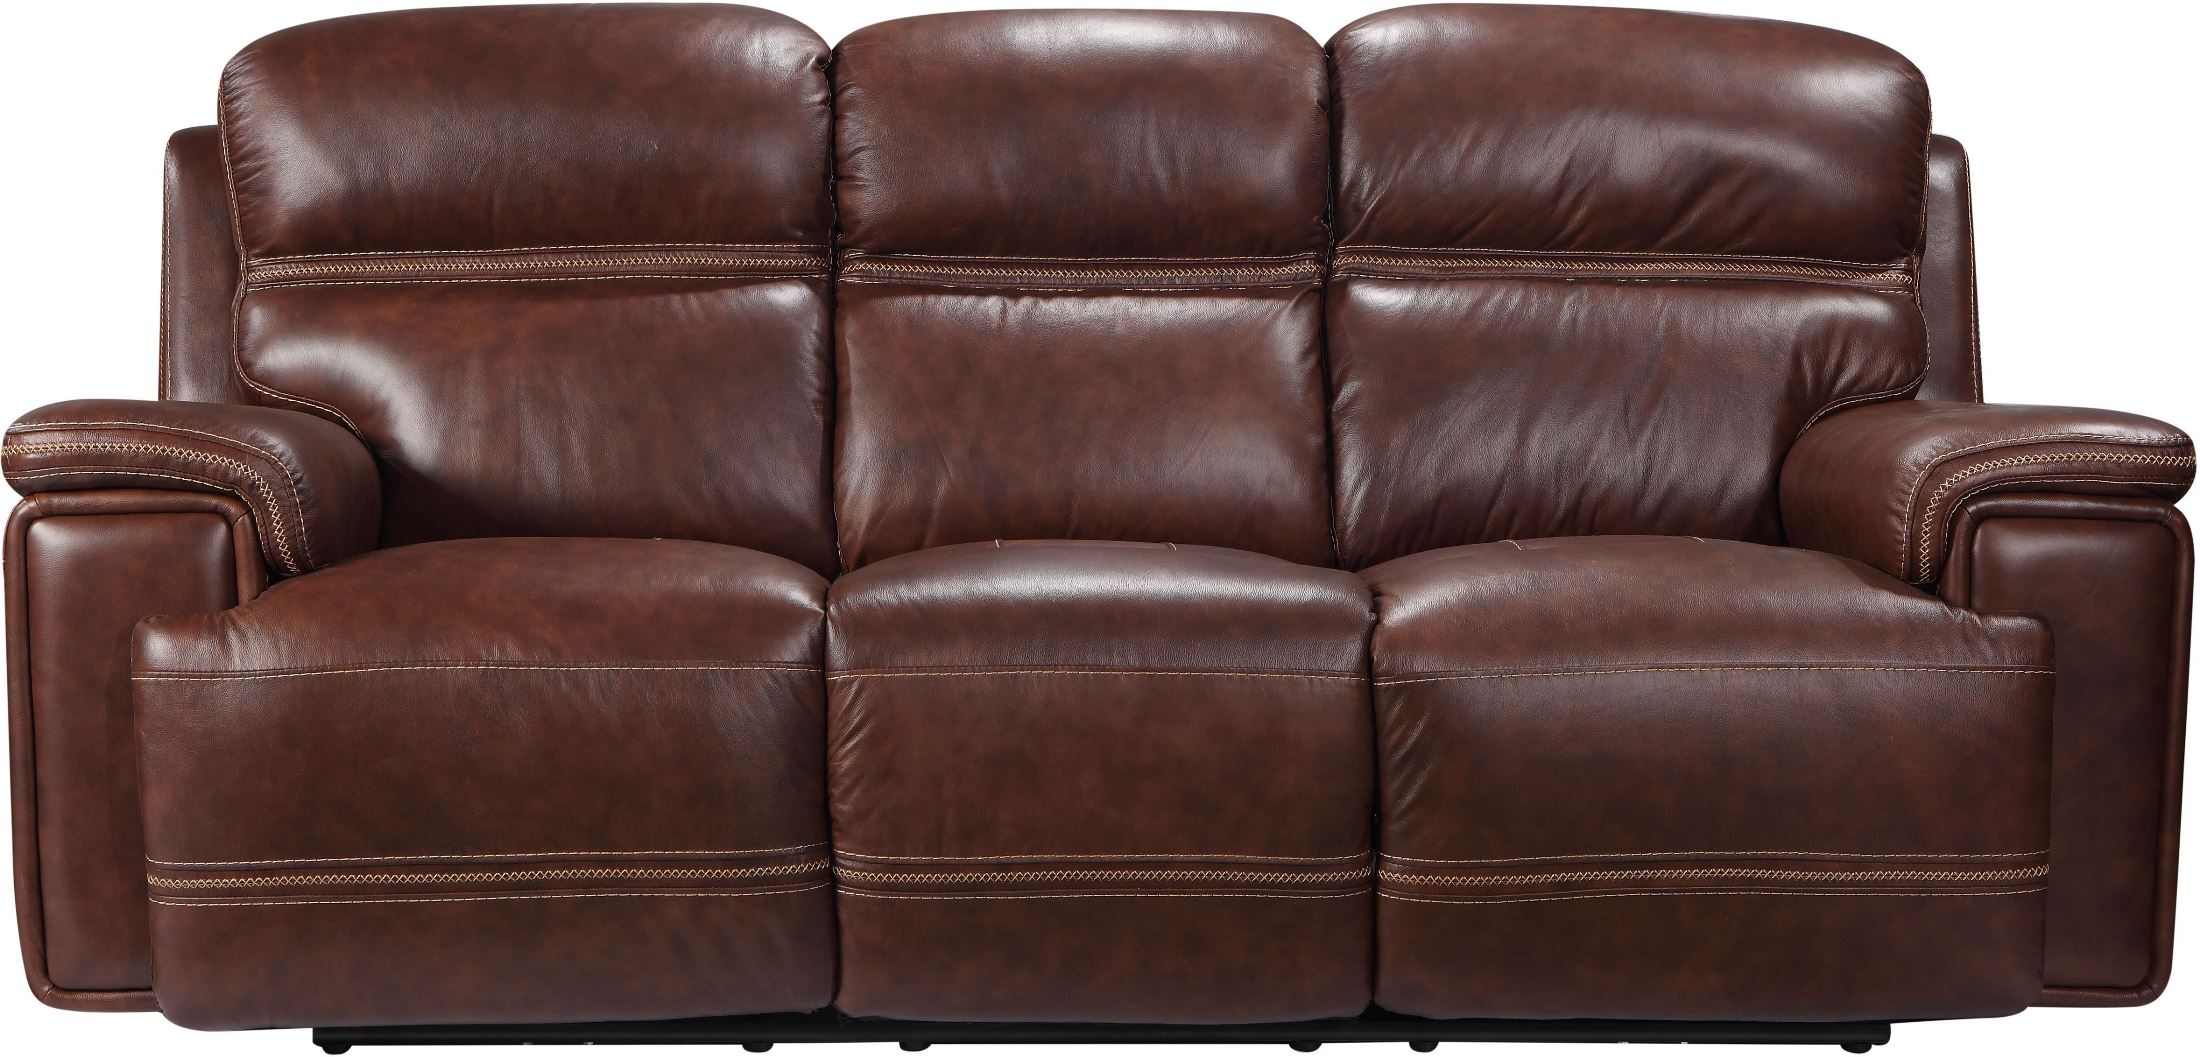 Leather Furniture Traveler Collection: Leather Italia USA Shae Fresno Brown Leather Reclining